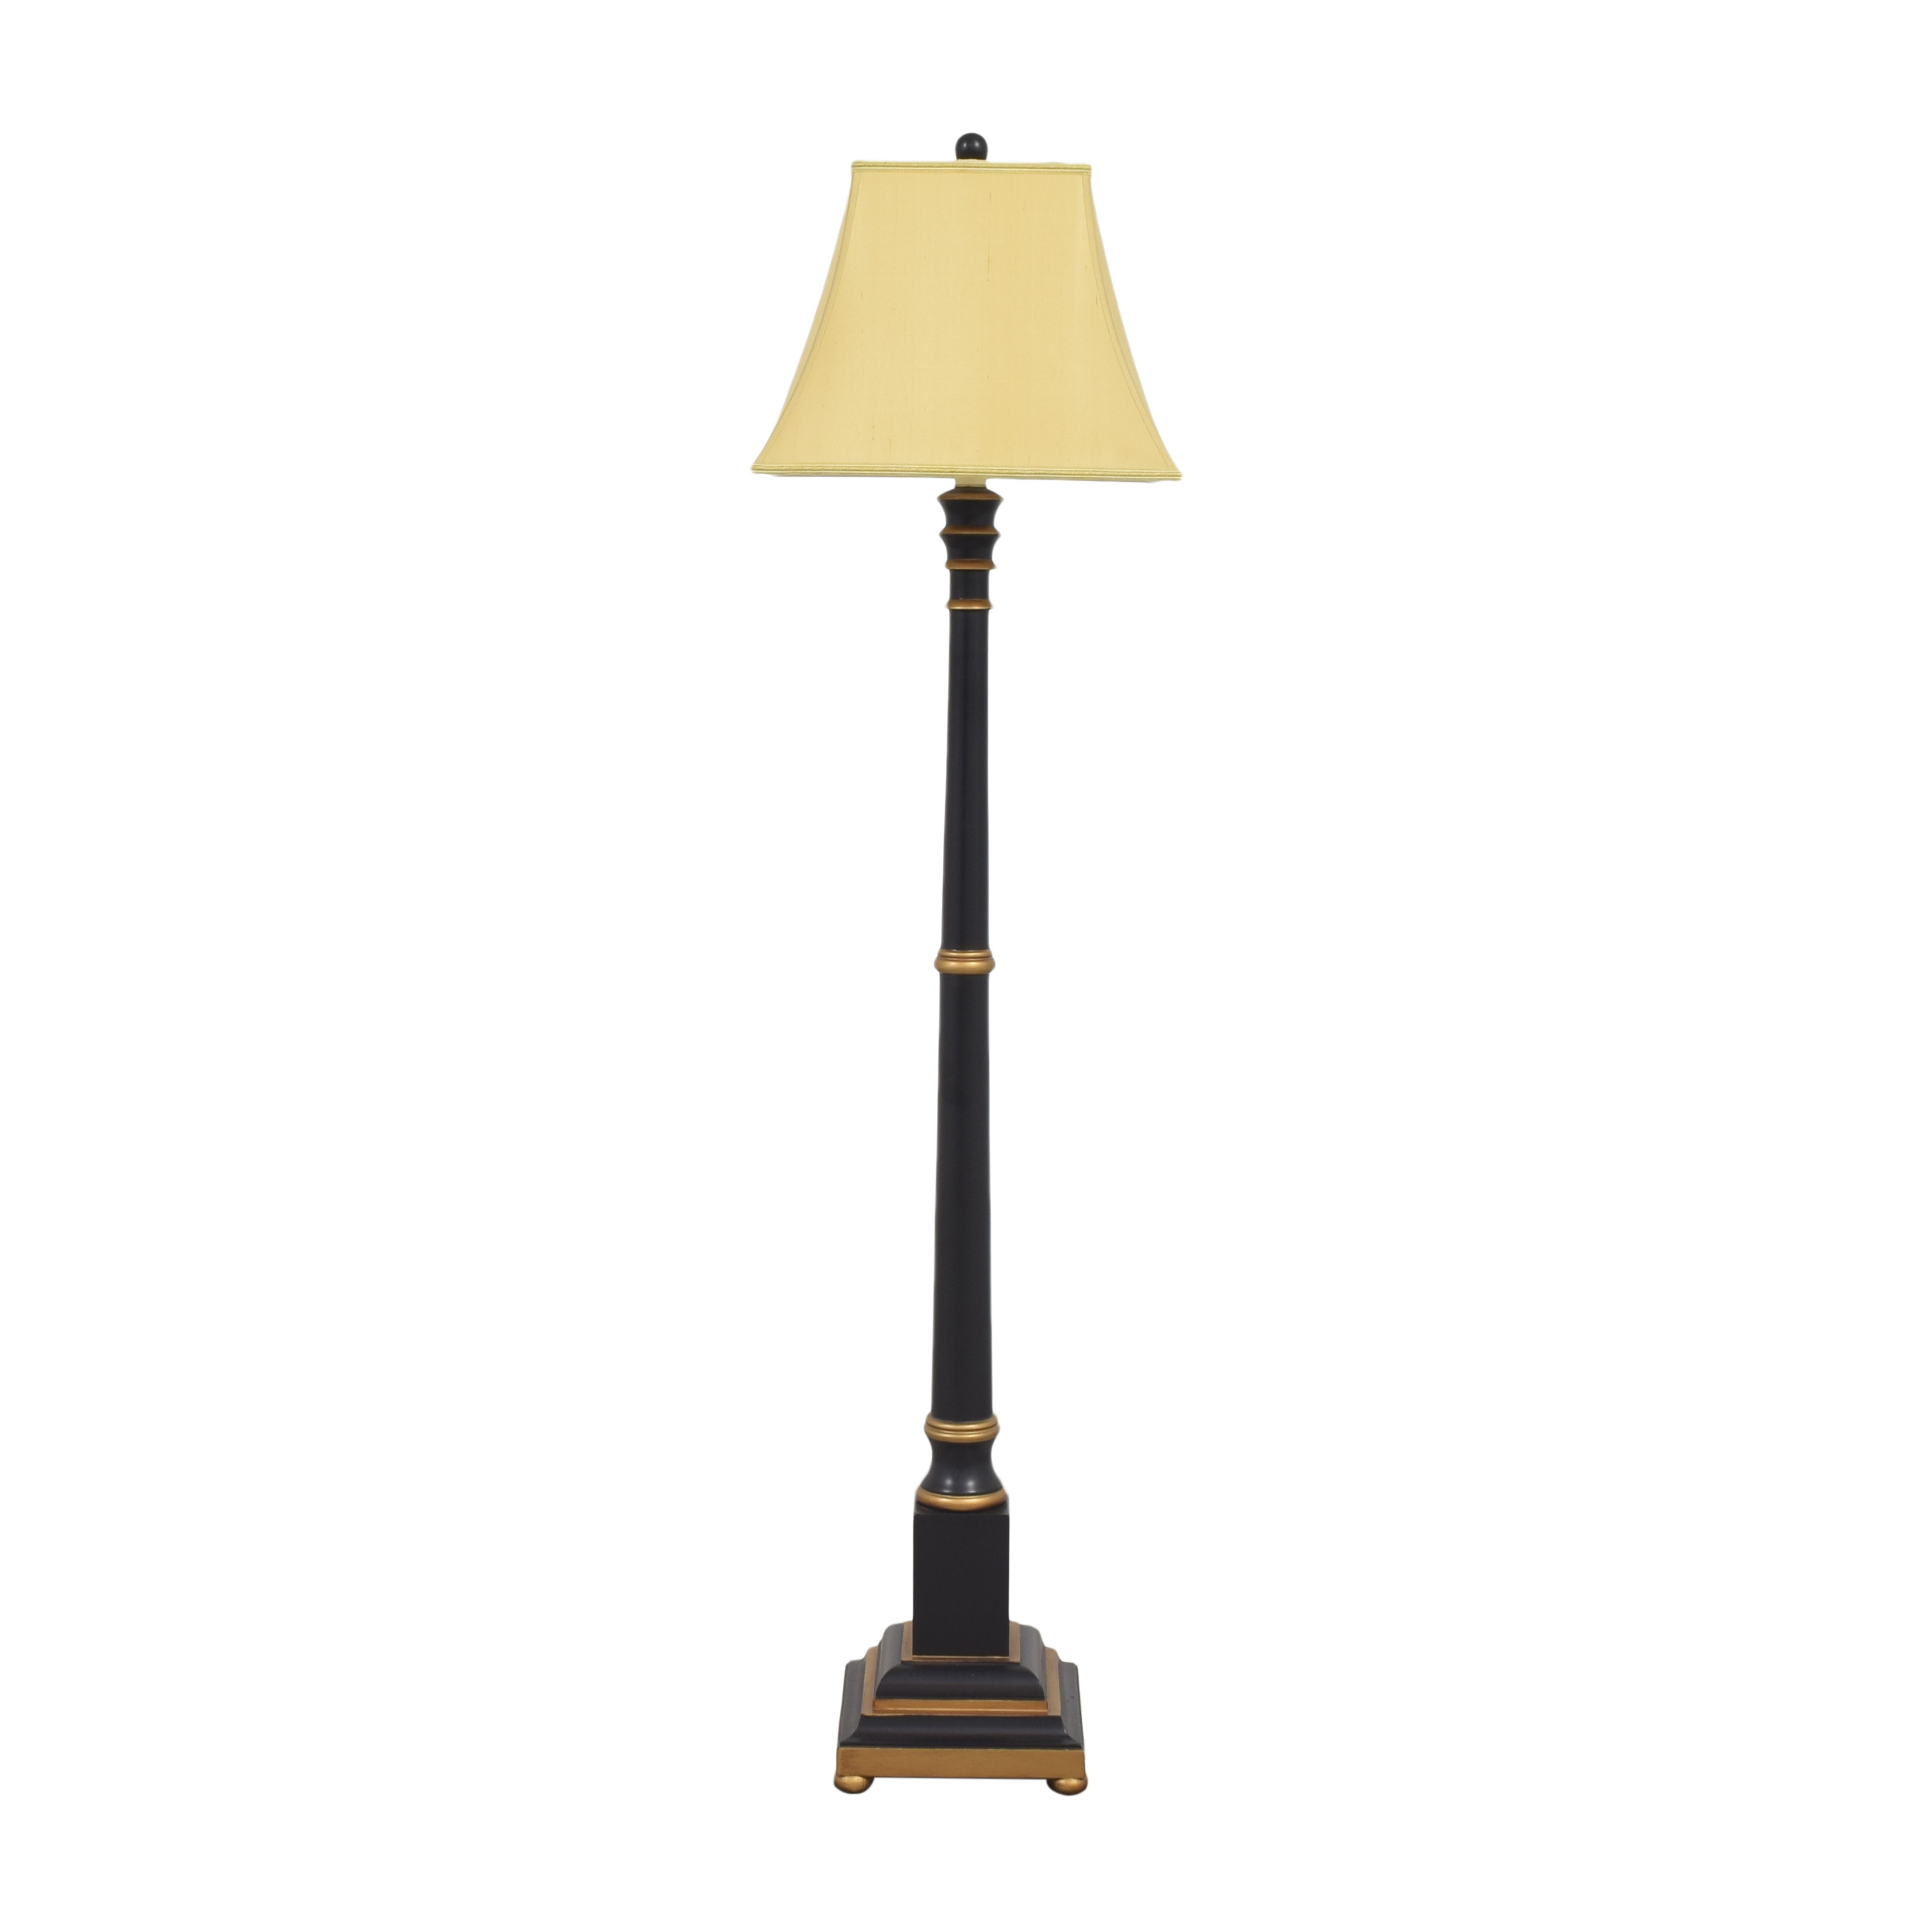 Wildwood Wildwood Candlestick Floor Lamp black & gold